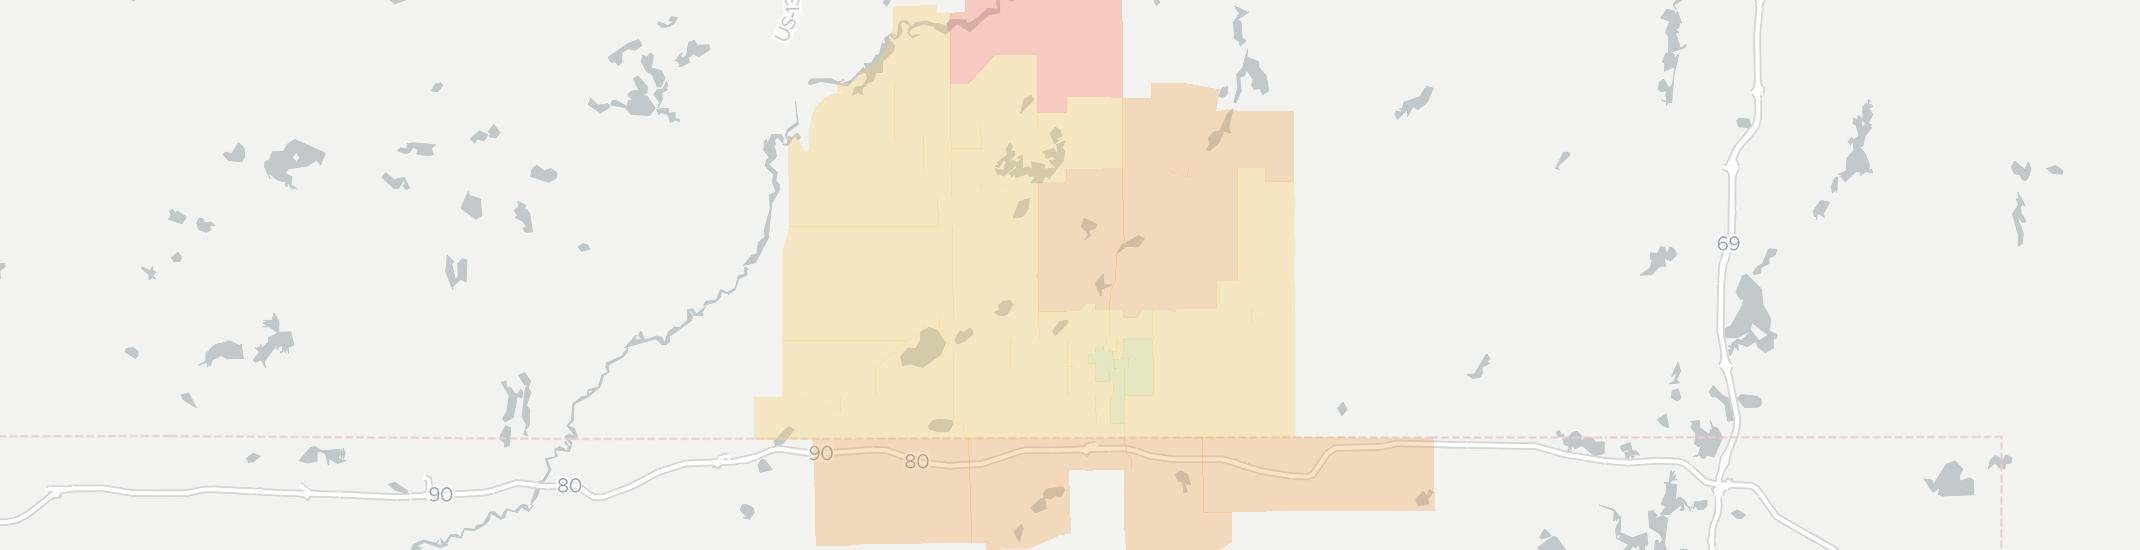 Sturgis Internet Competition Map. Click for interactive map.